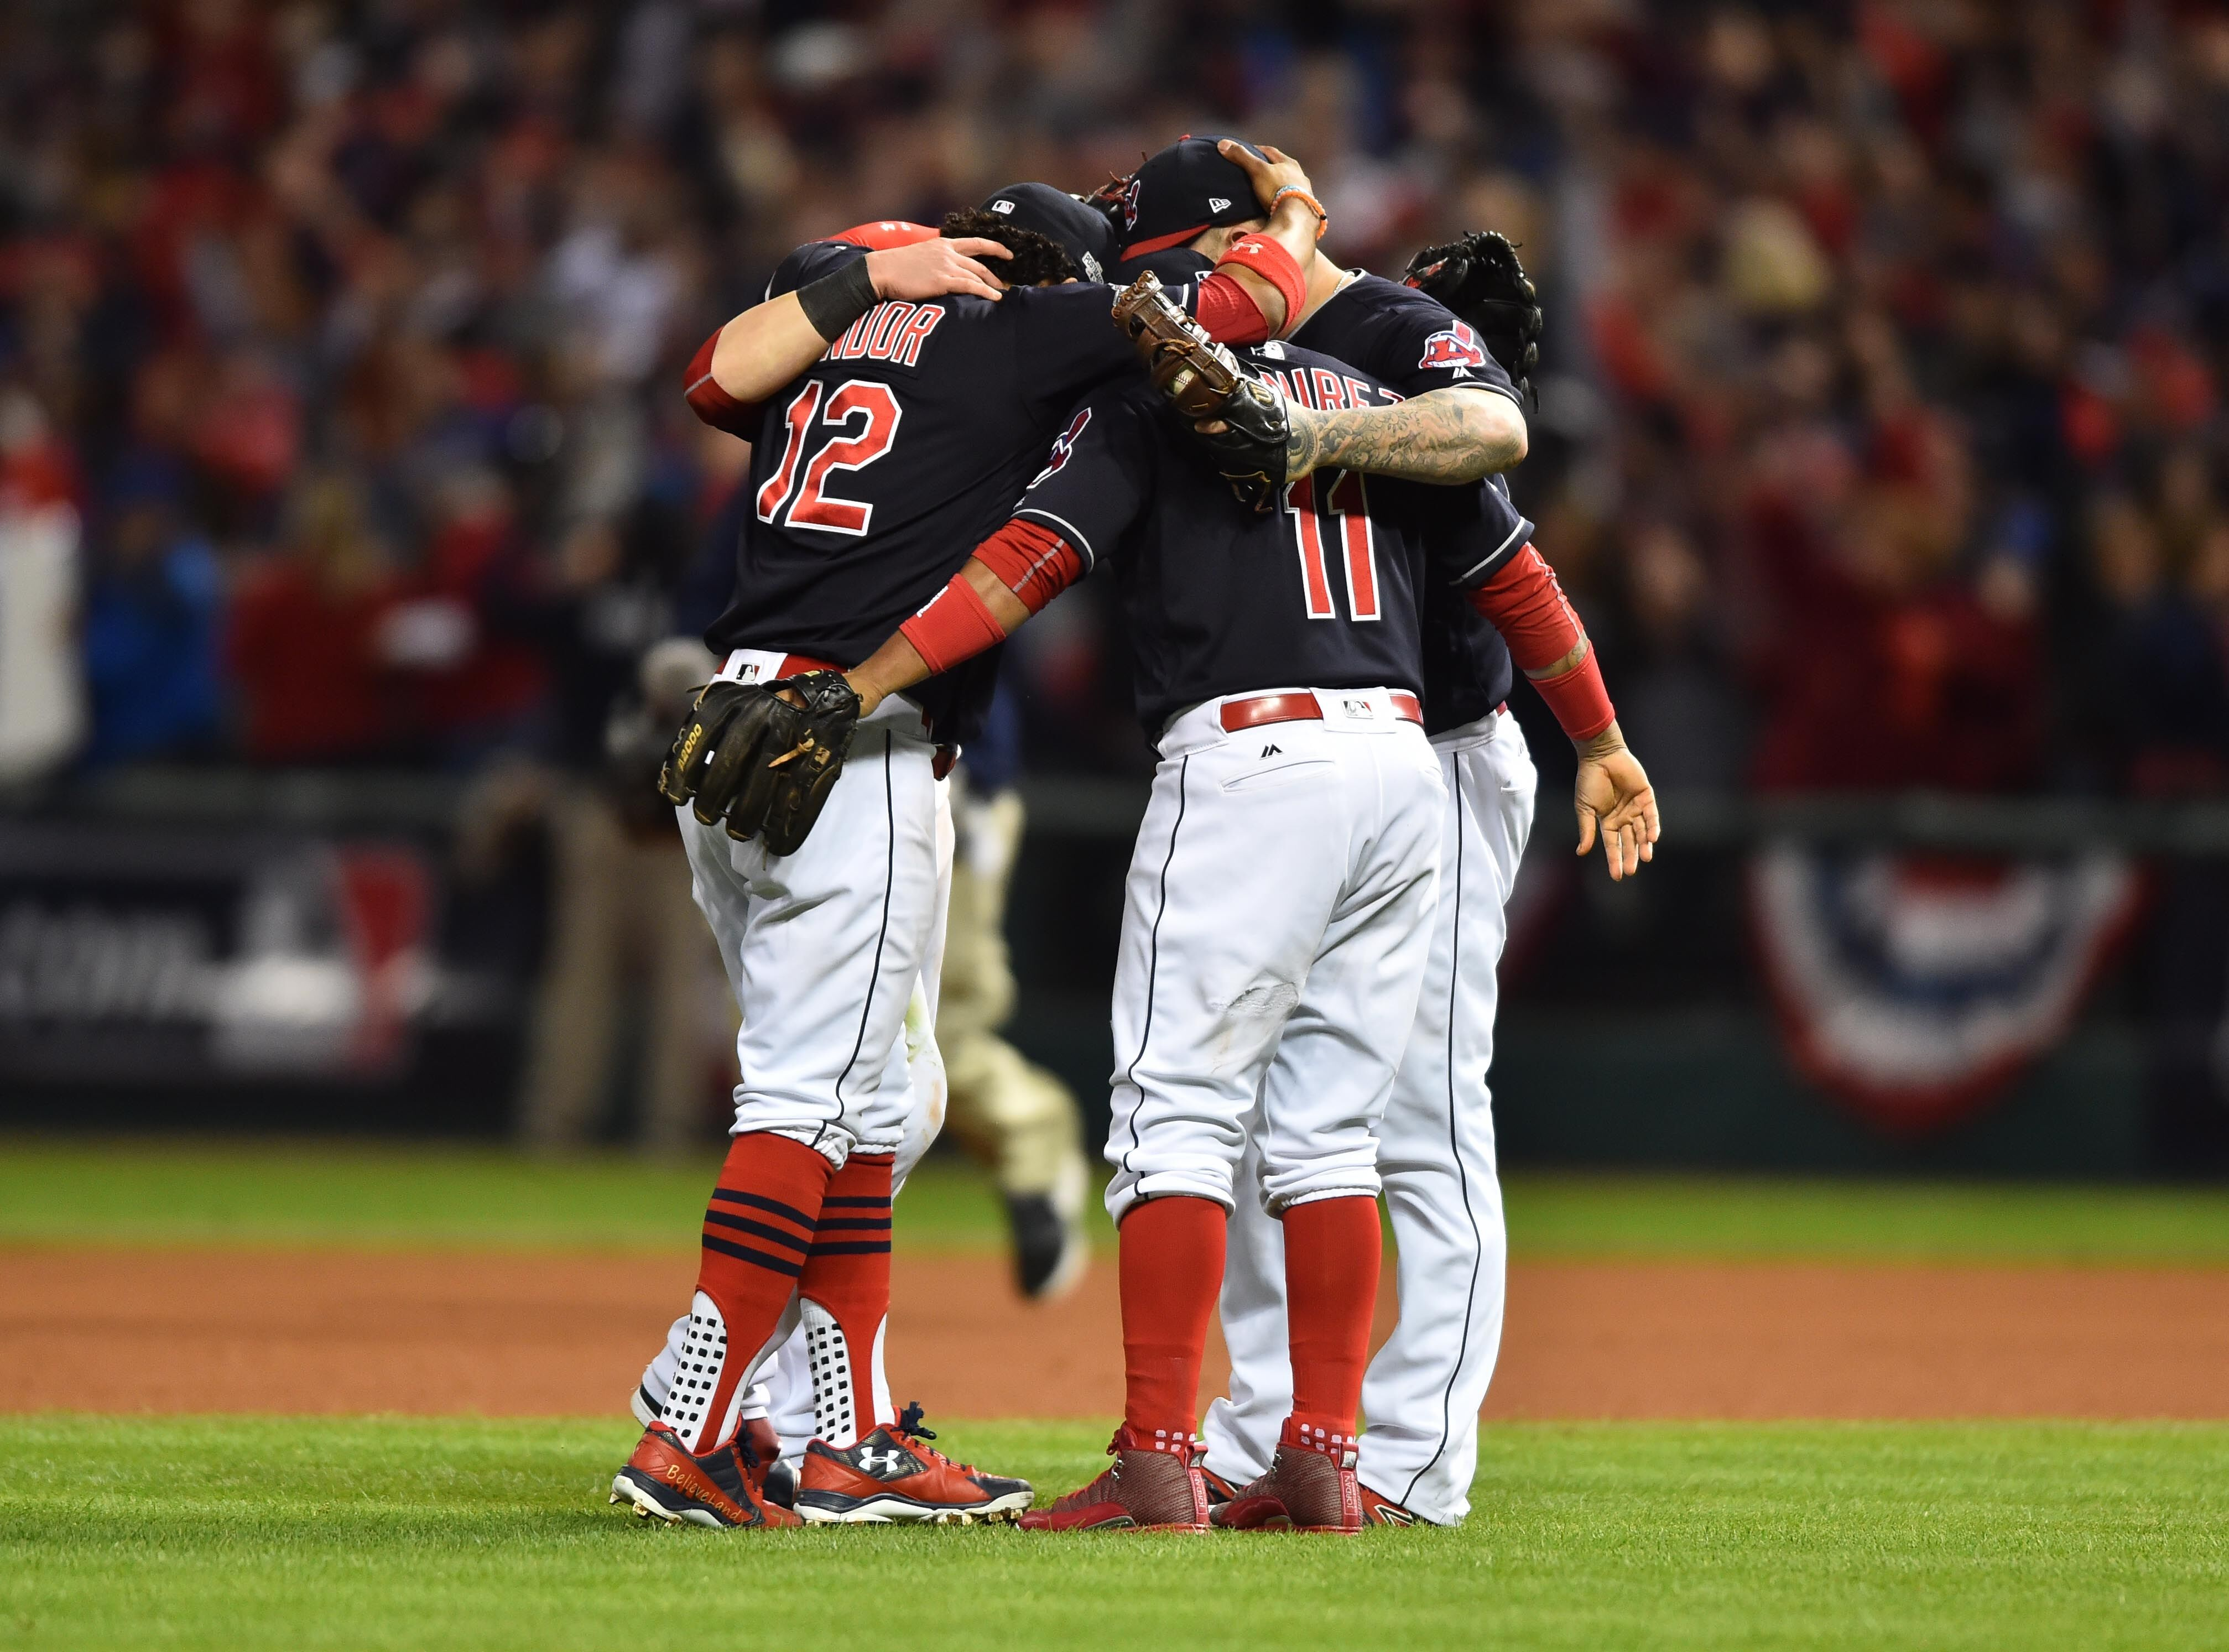 Cleveland Indians: One Final Night Without Indians Baseball